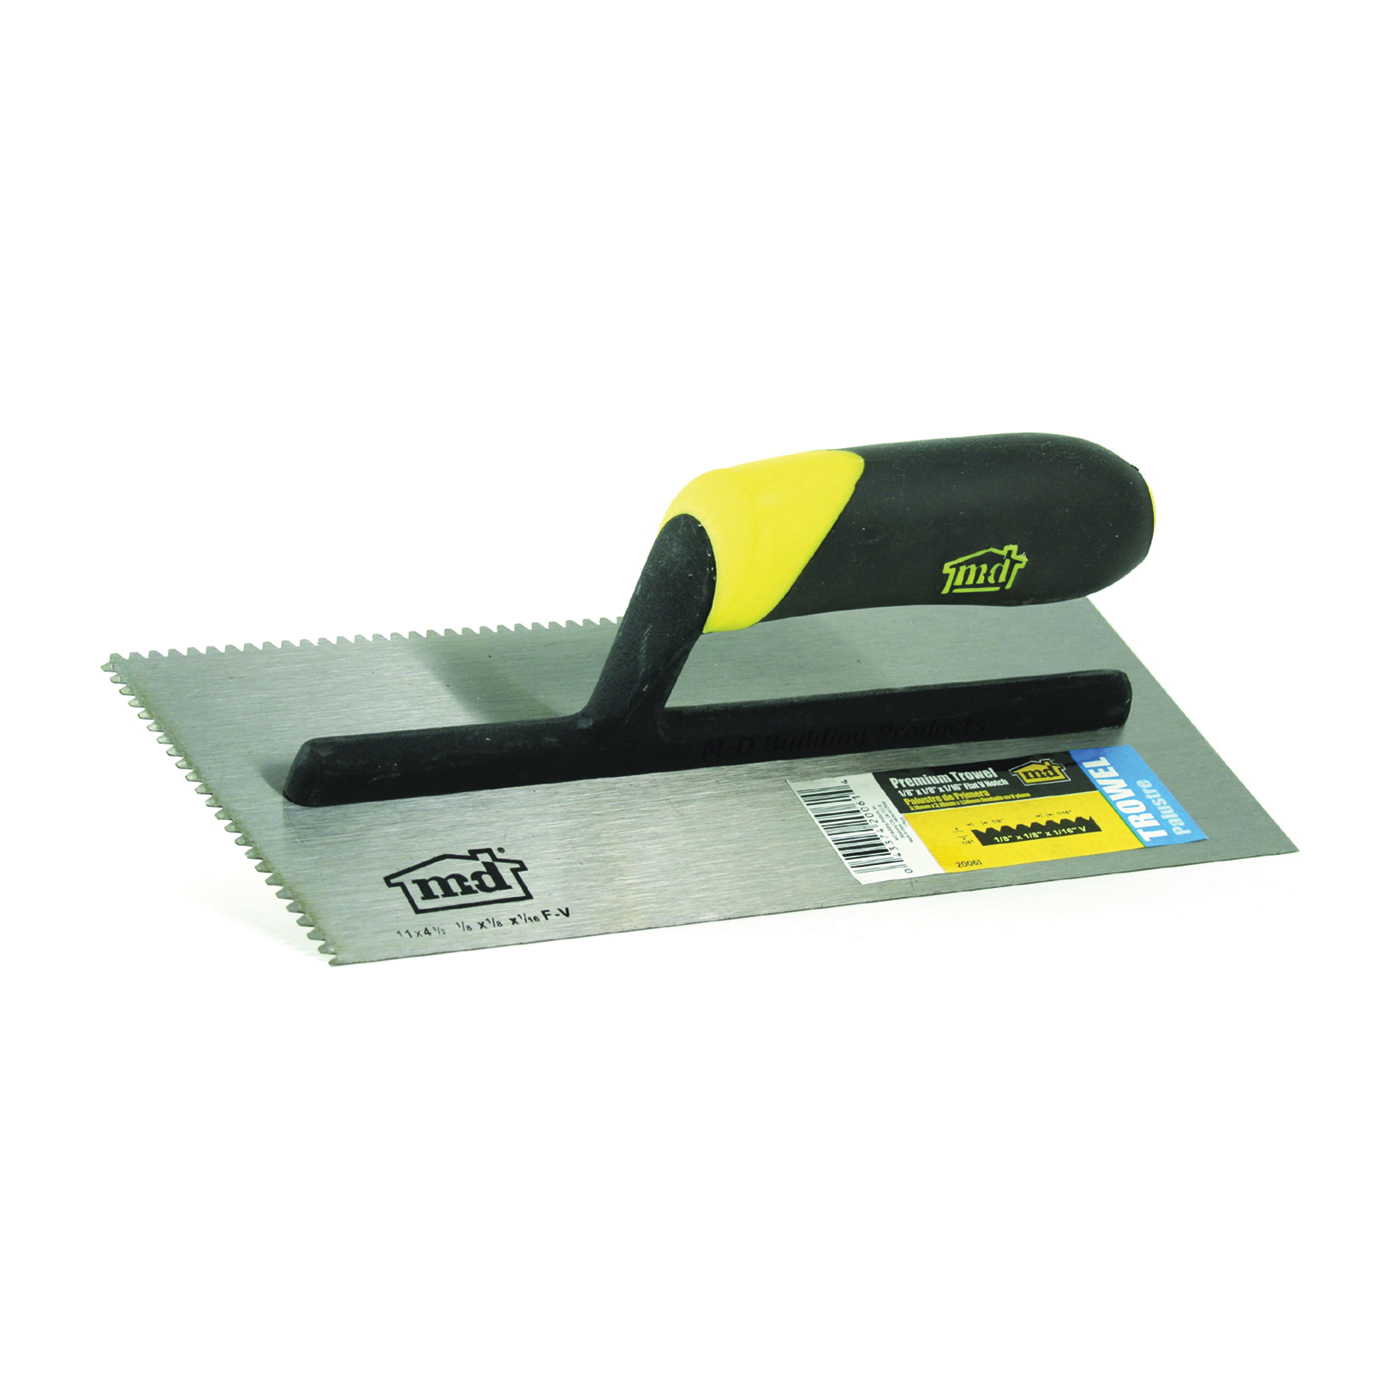 Picture of M-D 20061 Tile Installation Trowel, 11 in L, 4-1/2 in W, Flat V Notch, Comfort Grip Handle